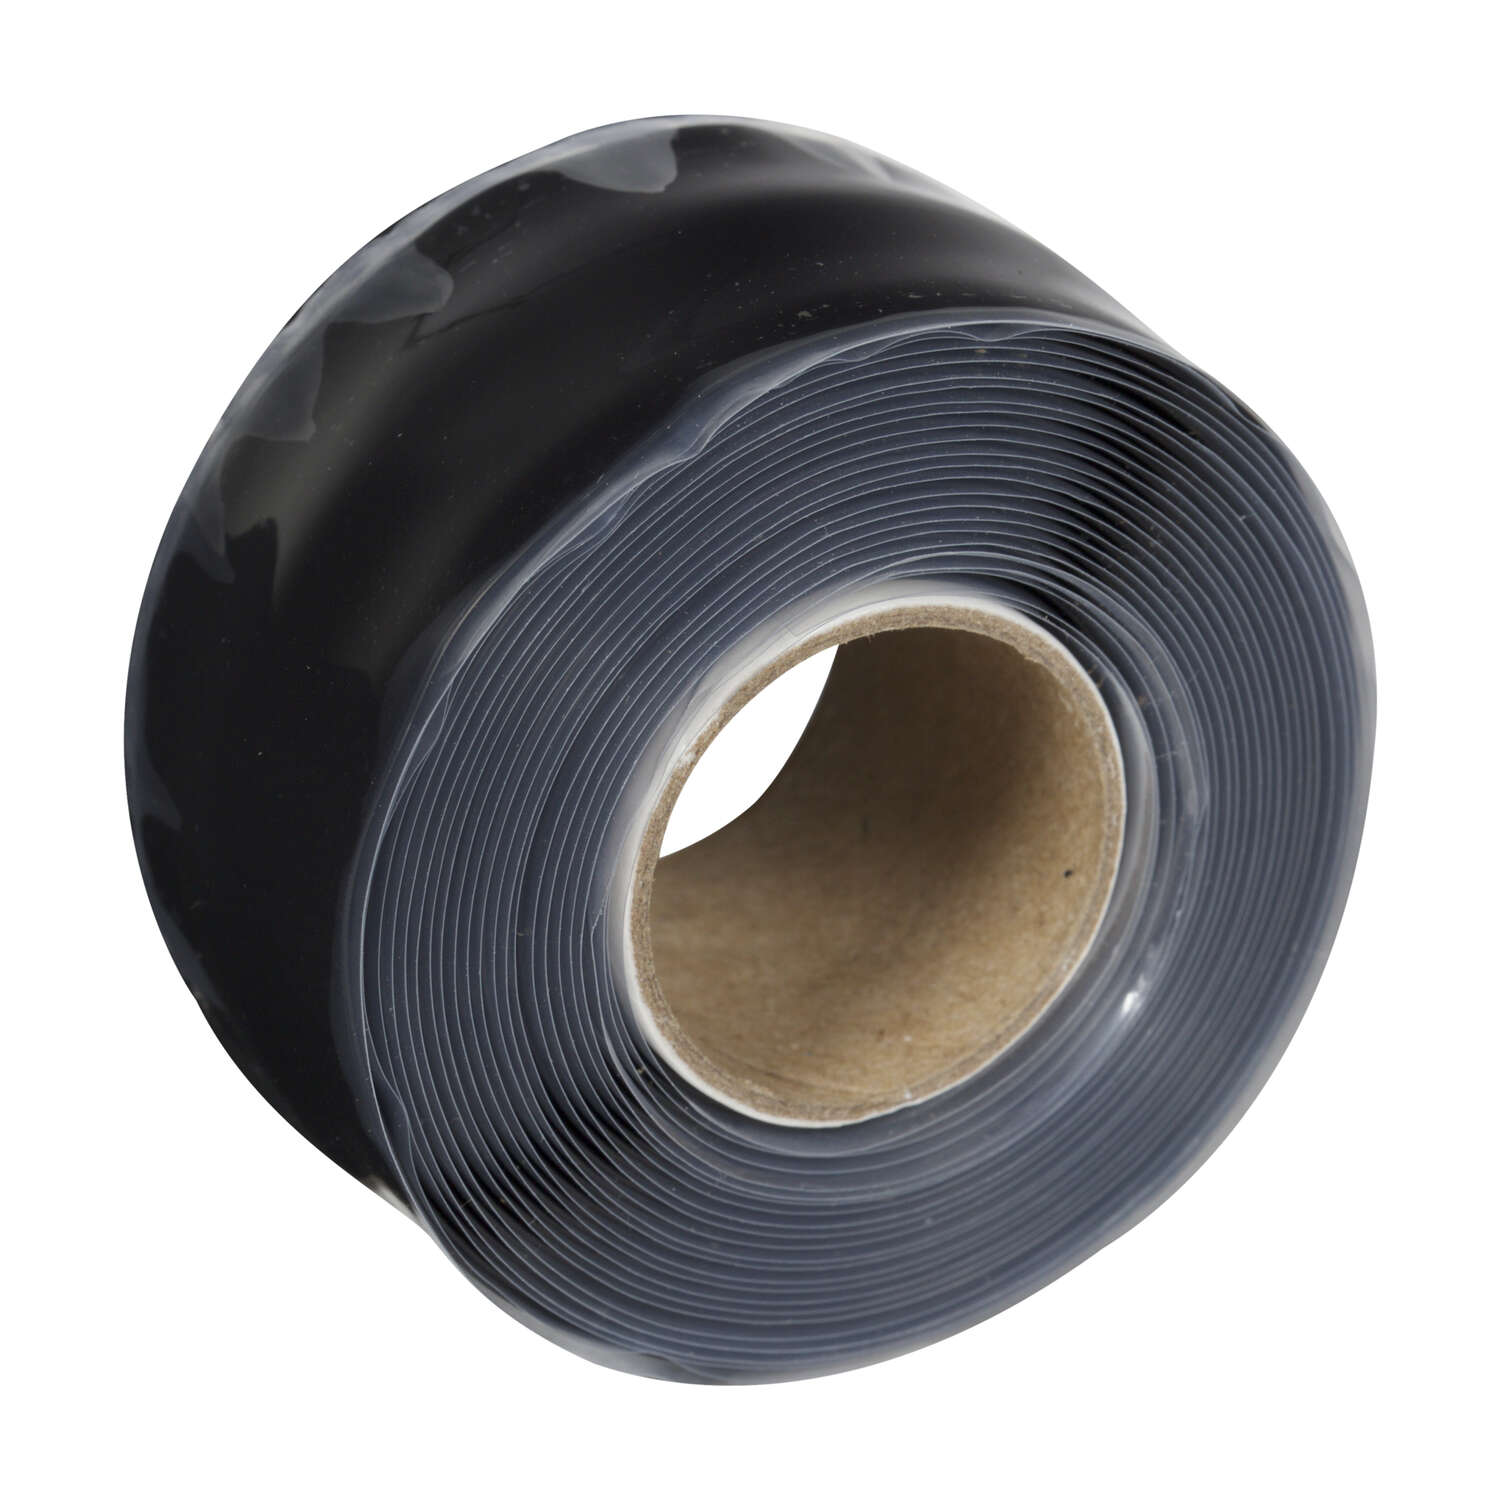 Wrap-Fix 1 in. W x 10 ft. L Black Self-Sealing Tape Vinyl - Ace Hardware